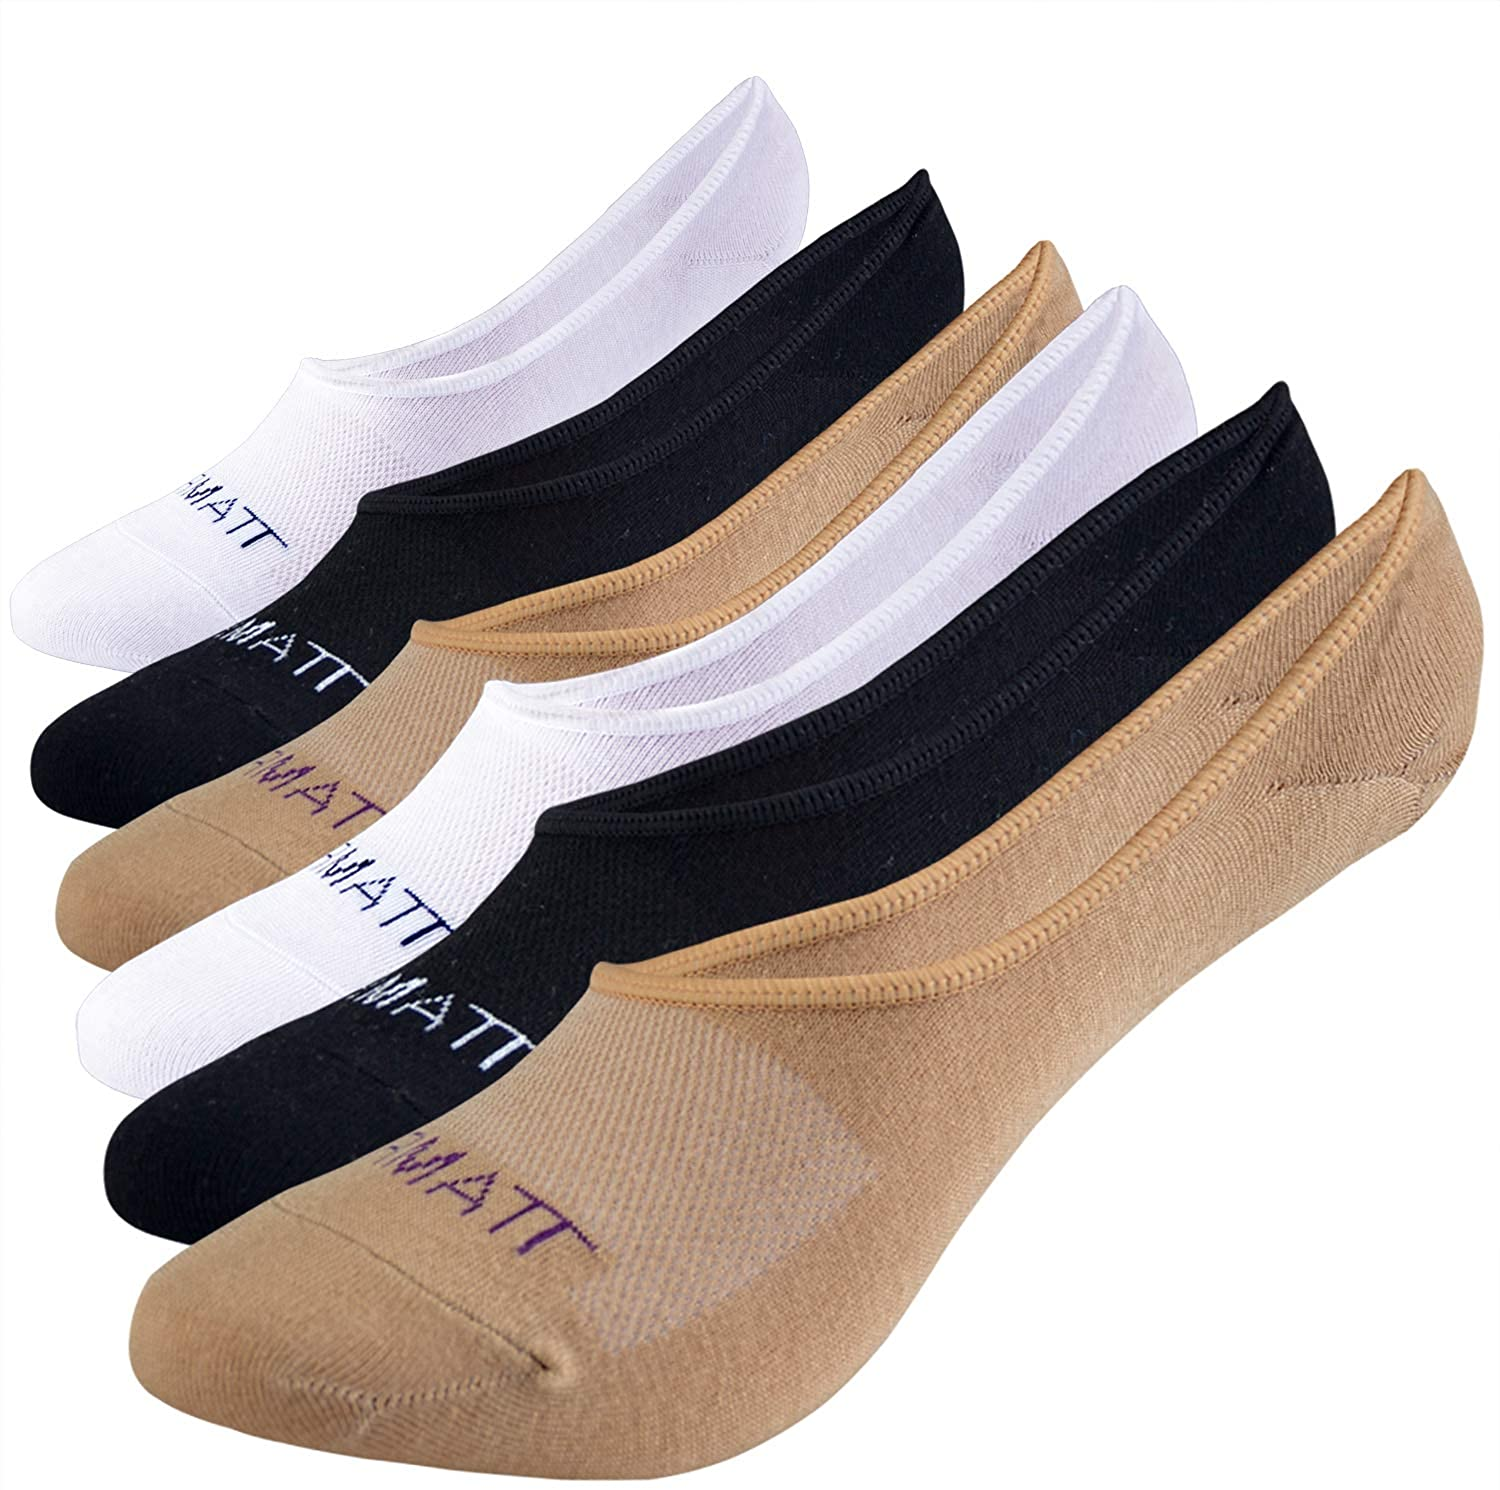 Jormatt 6 Pairs Womens Bamboo Super Low No Show Socks Mesh Ventilation with Anti-Slip Gel Heel Grip